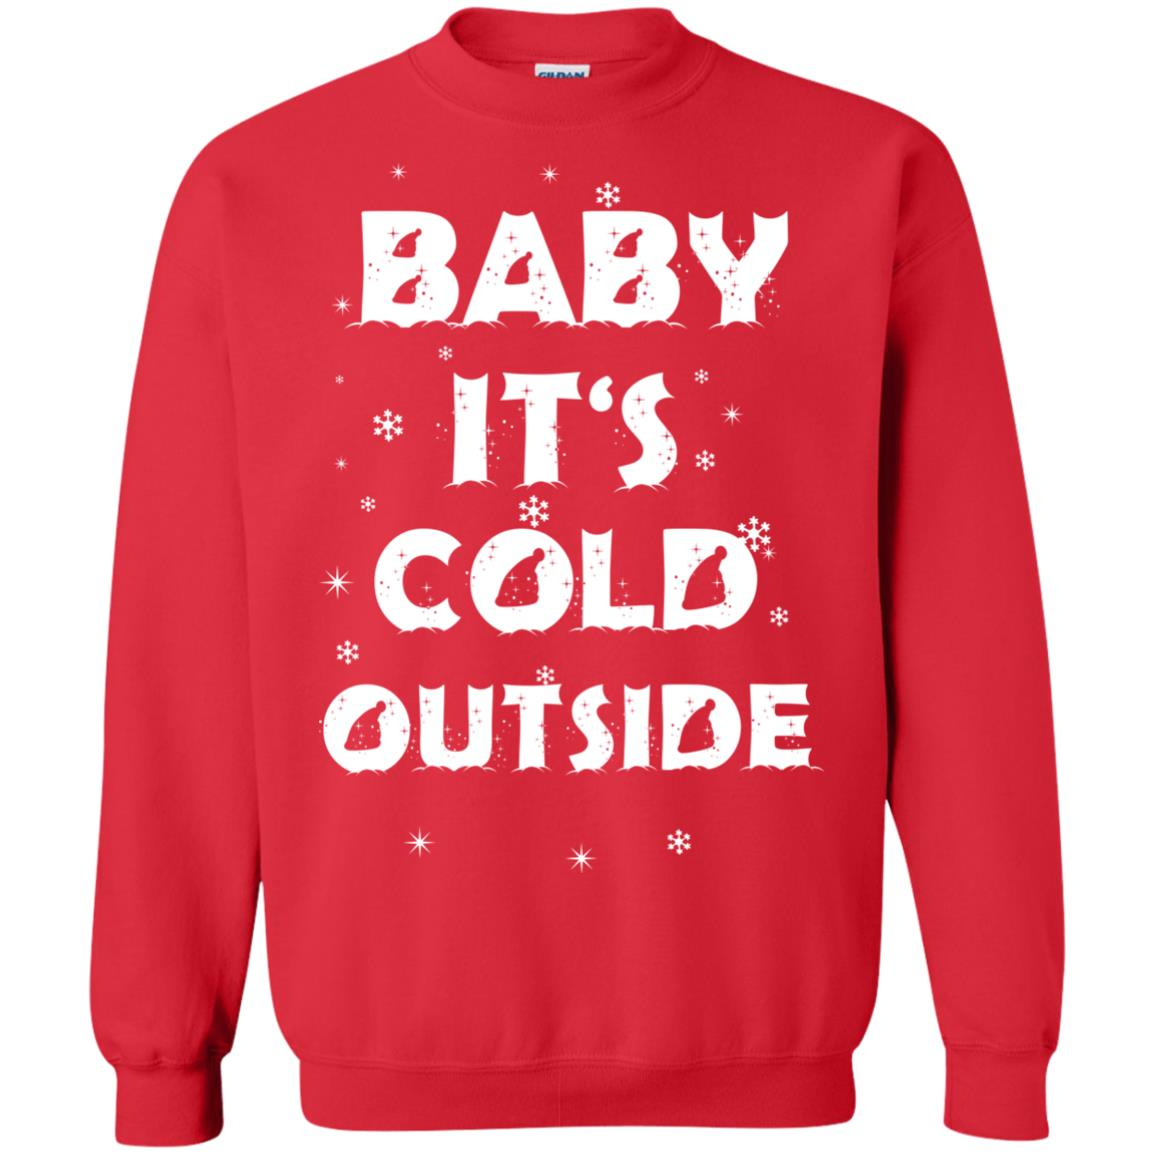 baby its cold outside christmas sweater hoodie image 1885 500x500